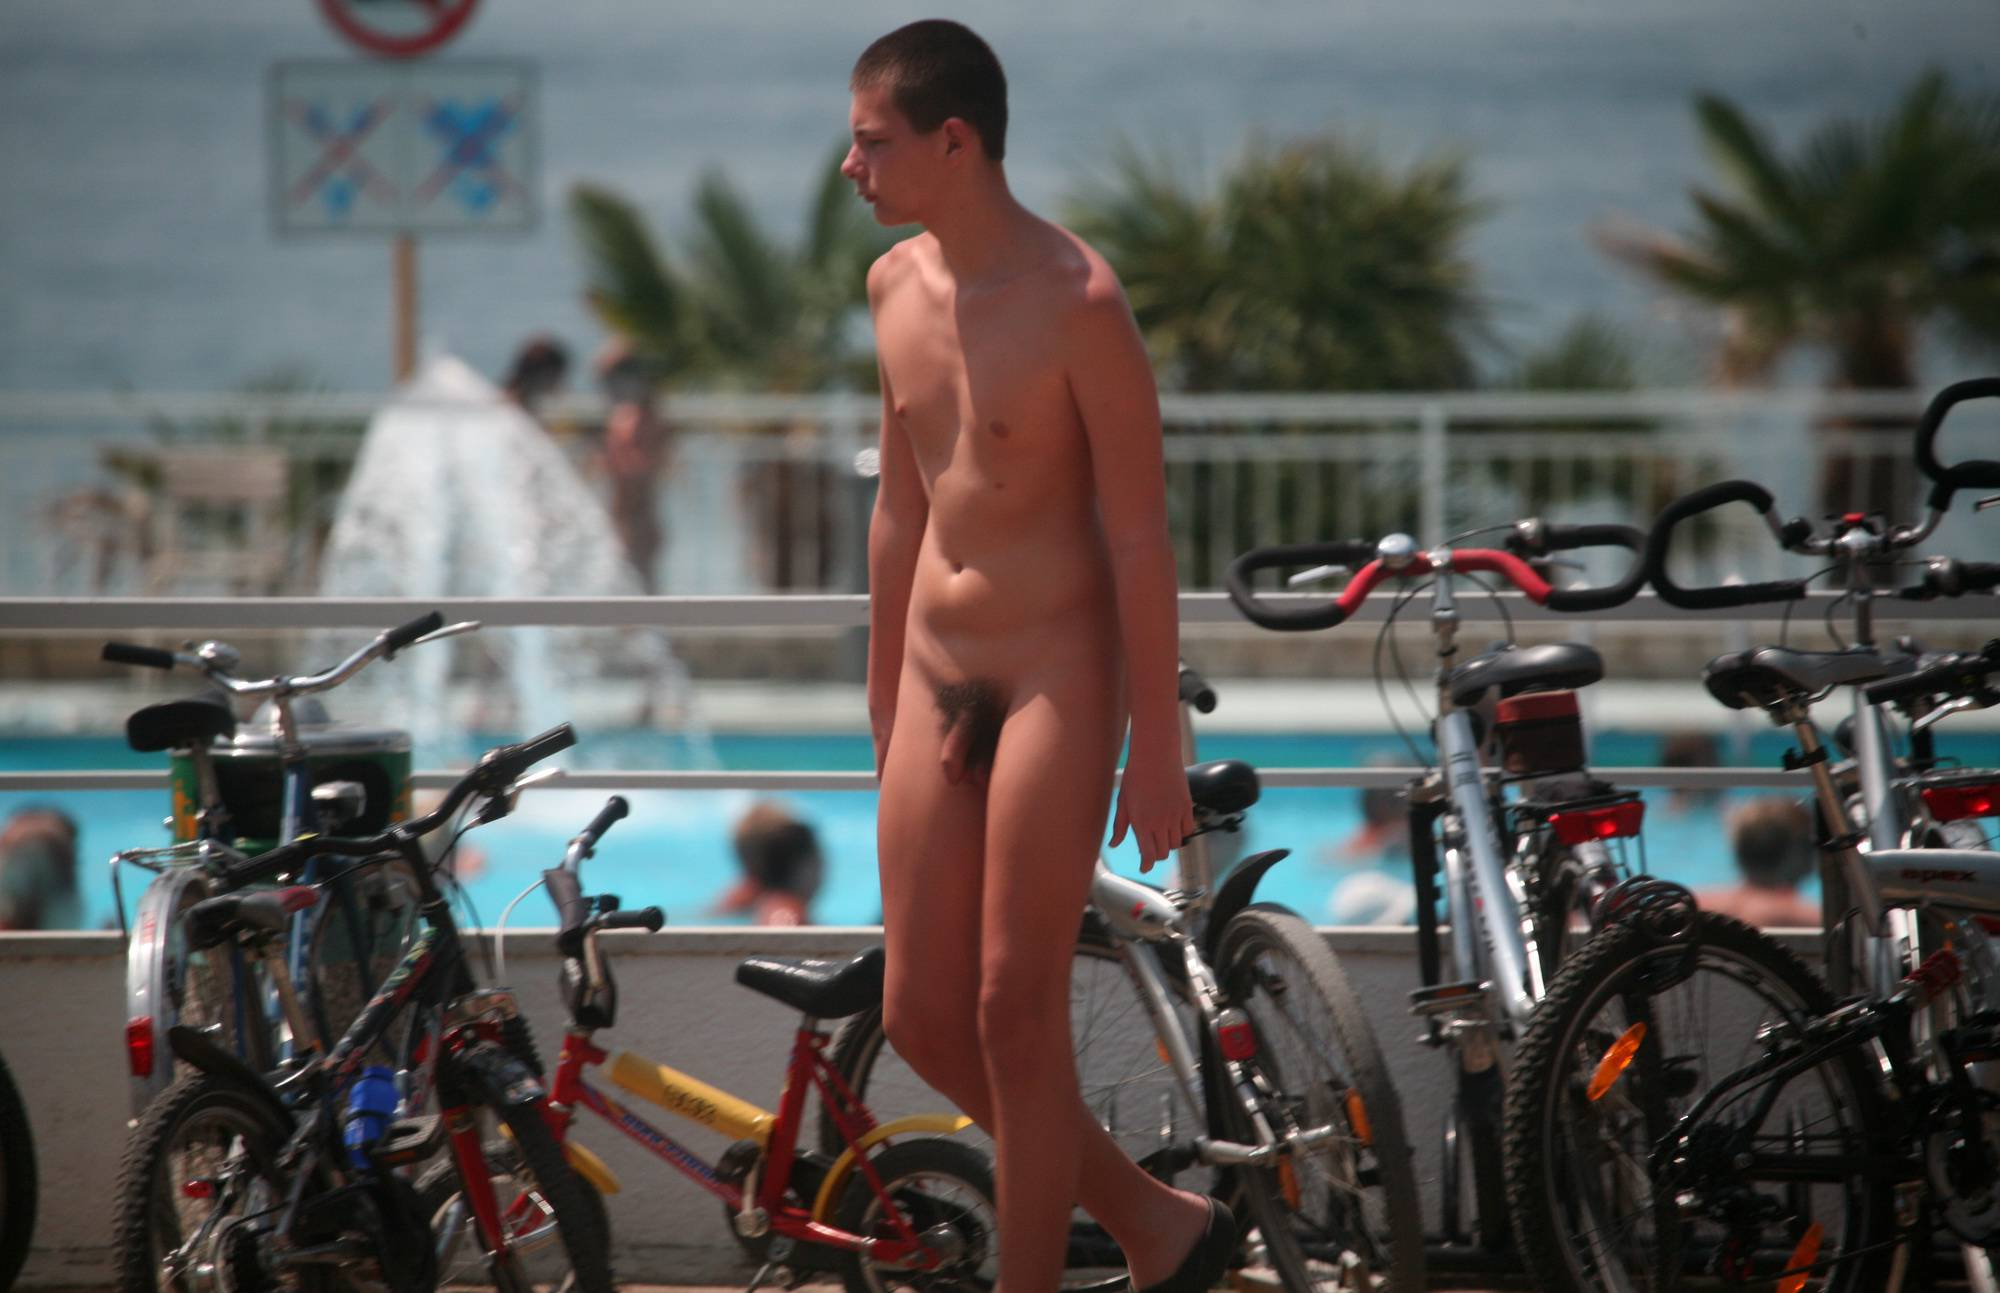 Nudist Pictures Outdoor Nude Bike Rack - 2